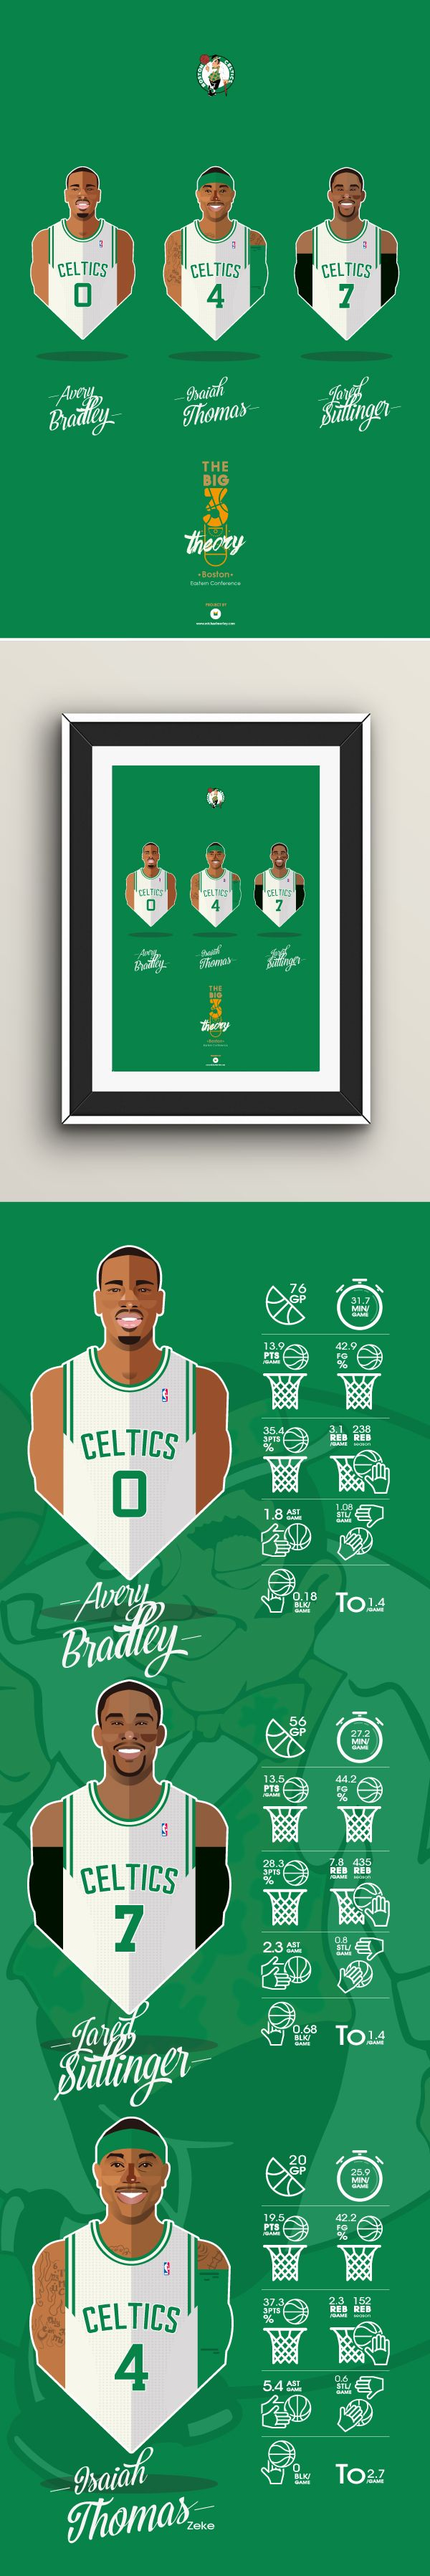 #NBA #players #CELTICS #Boston #vector face Big Men Big 3 #playoffs sport basketball illustration #Thomas #Sullinger #Bradley